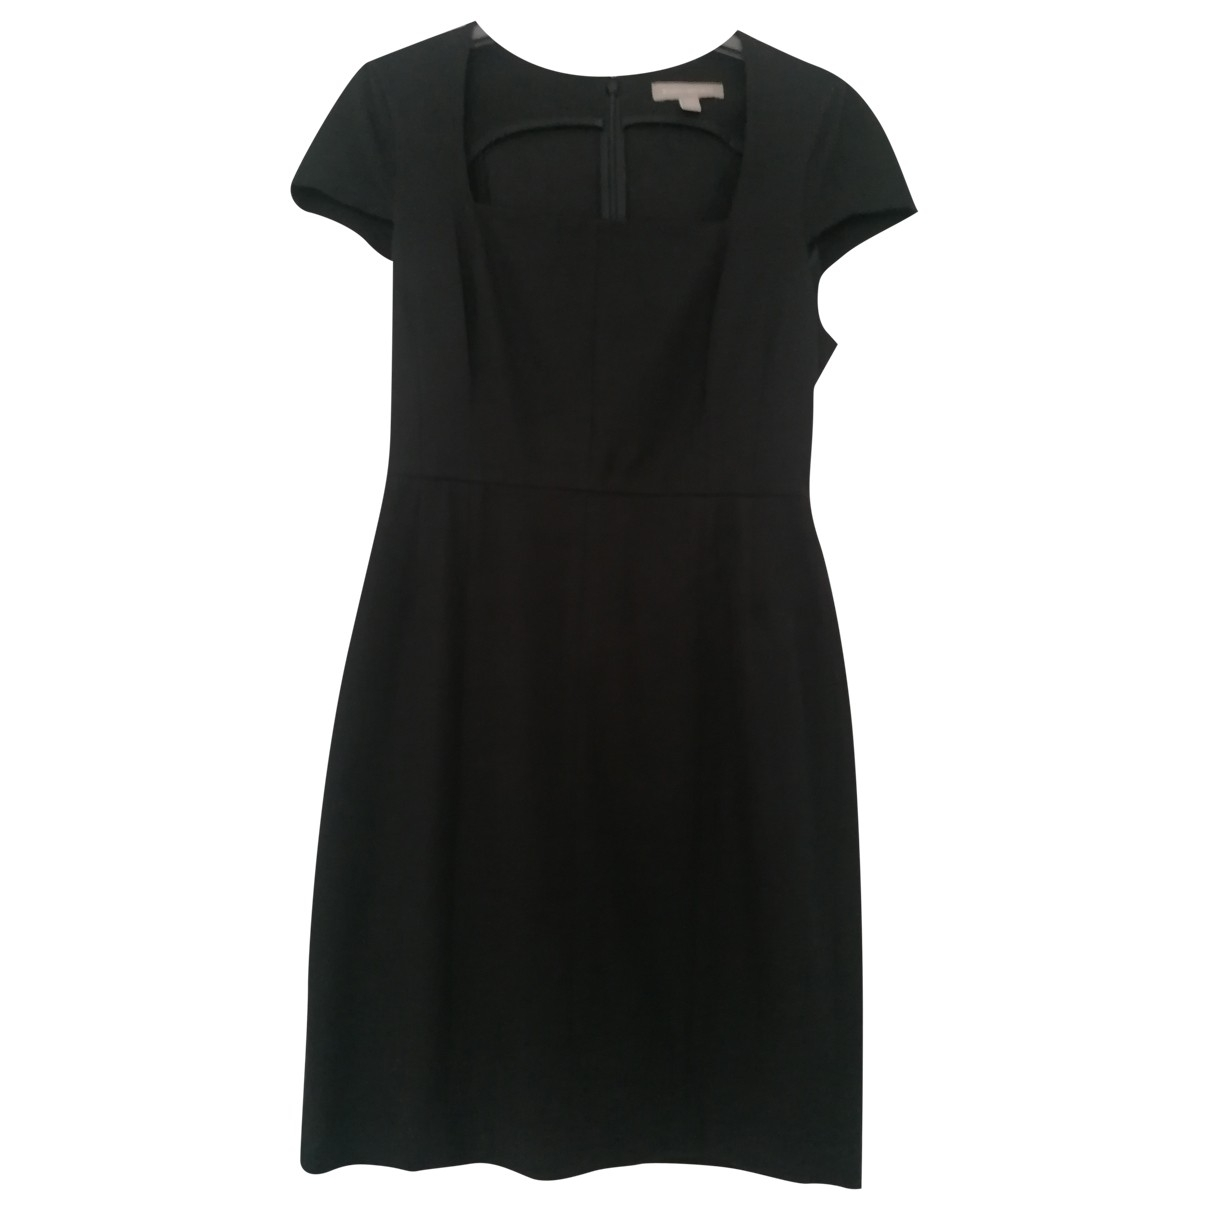 Banana Republic \N Black Cotton - elasthane dress for Women 8 US